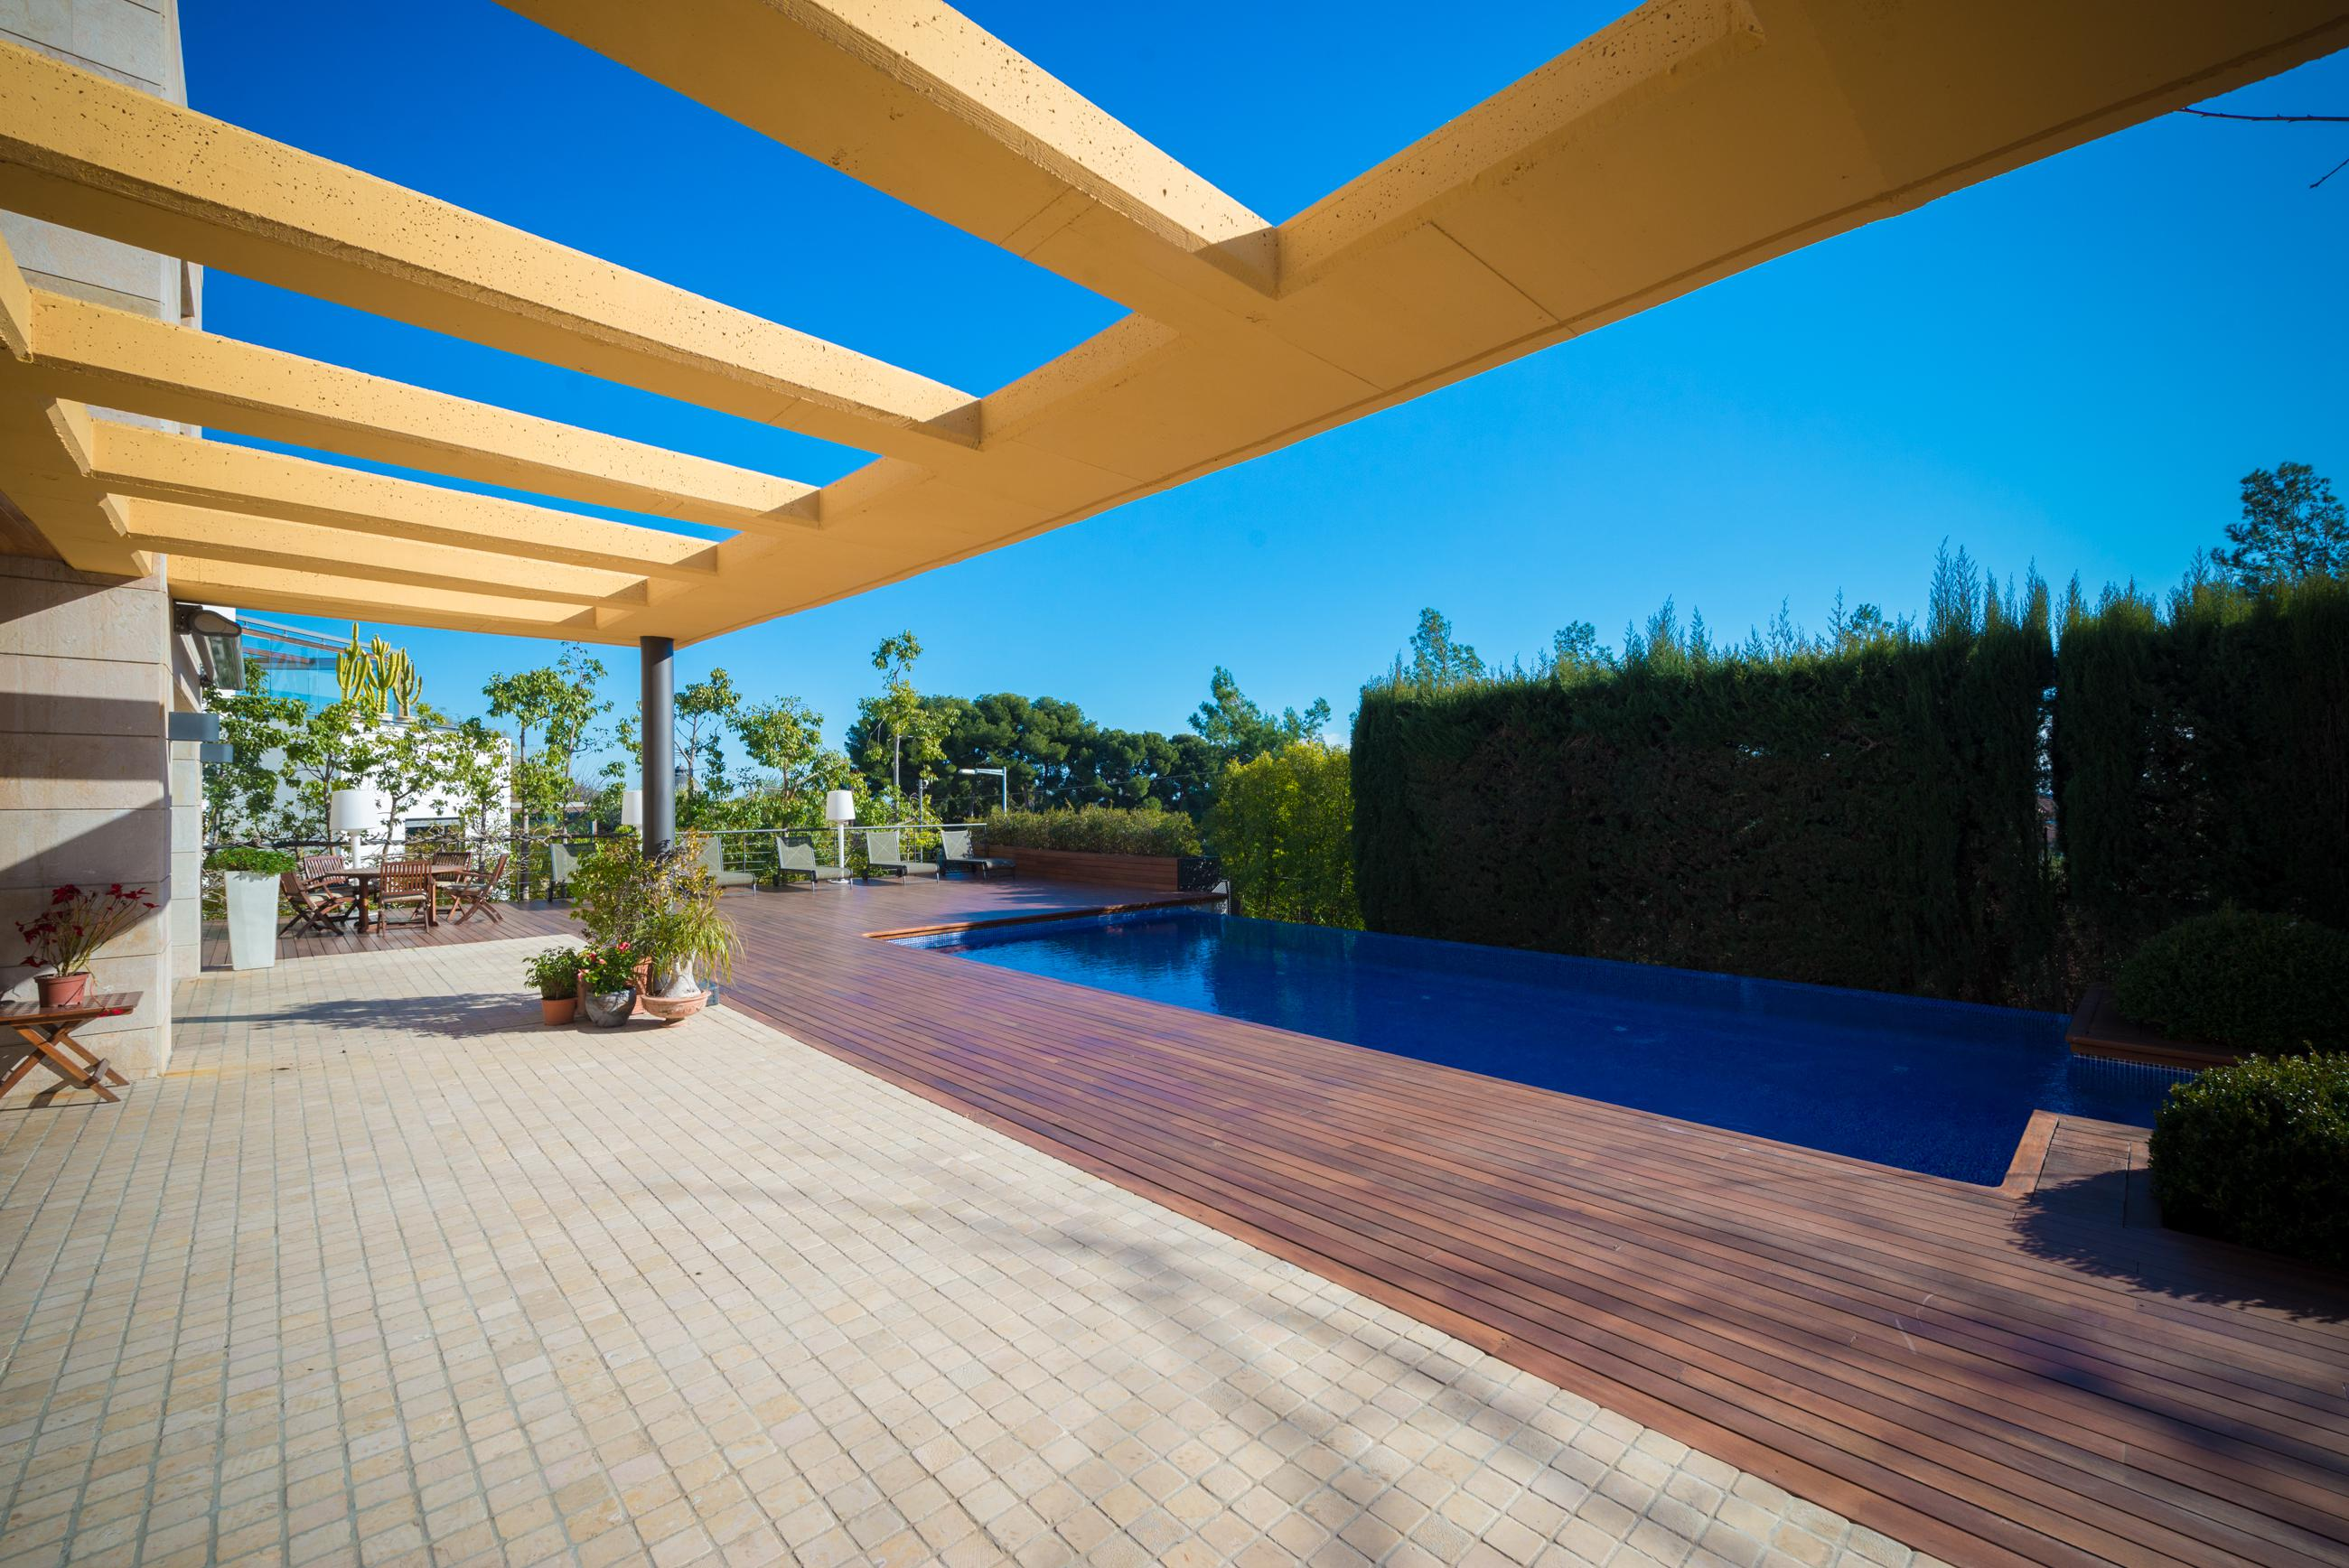 251384 Detached House for sale in Les Corts, Pedralbes 4